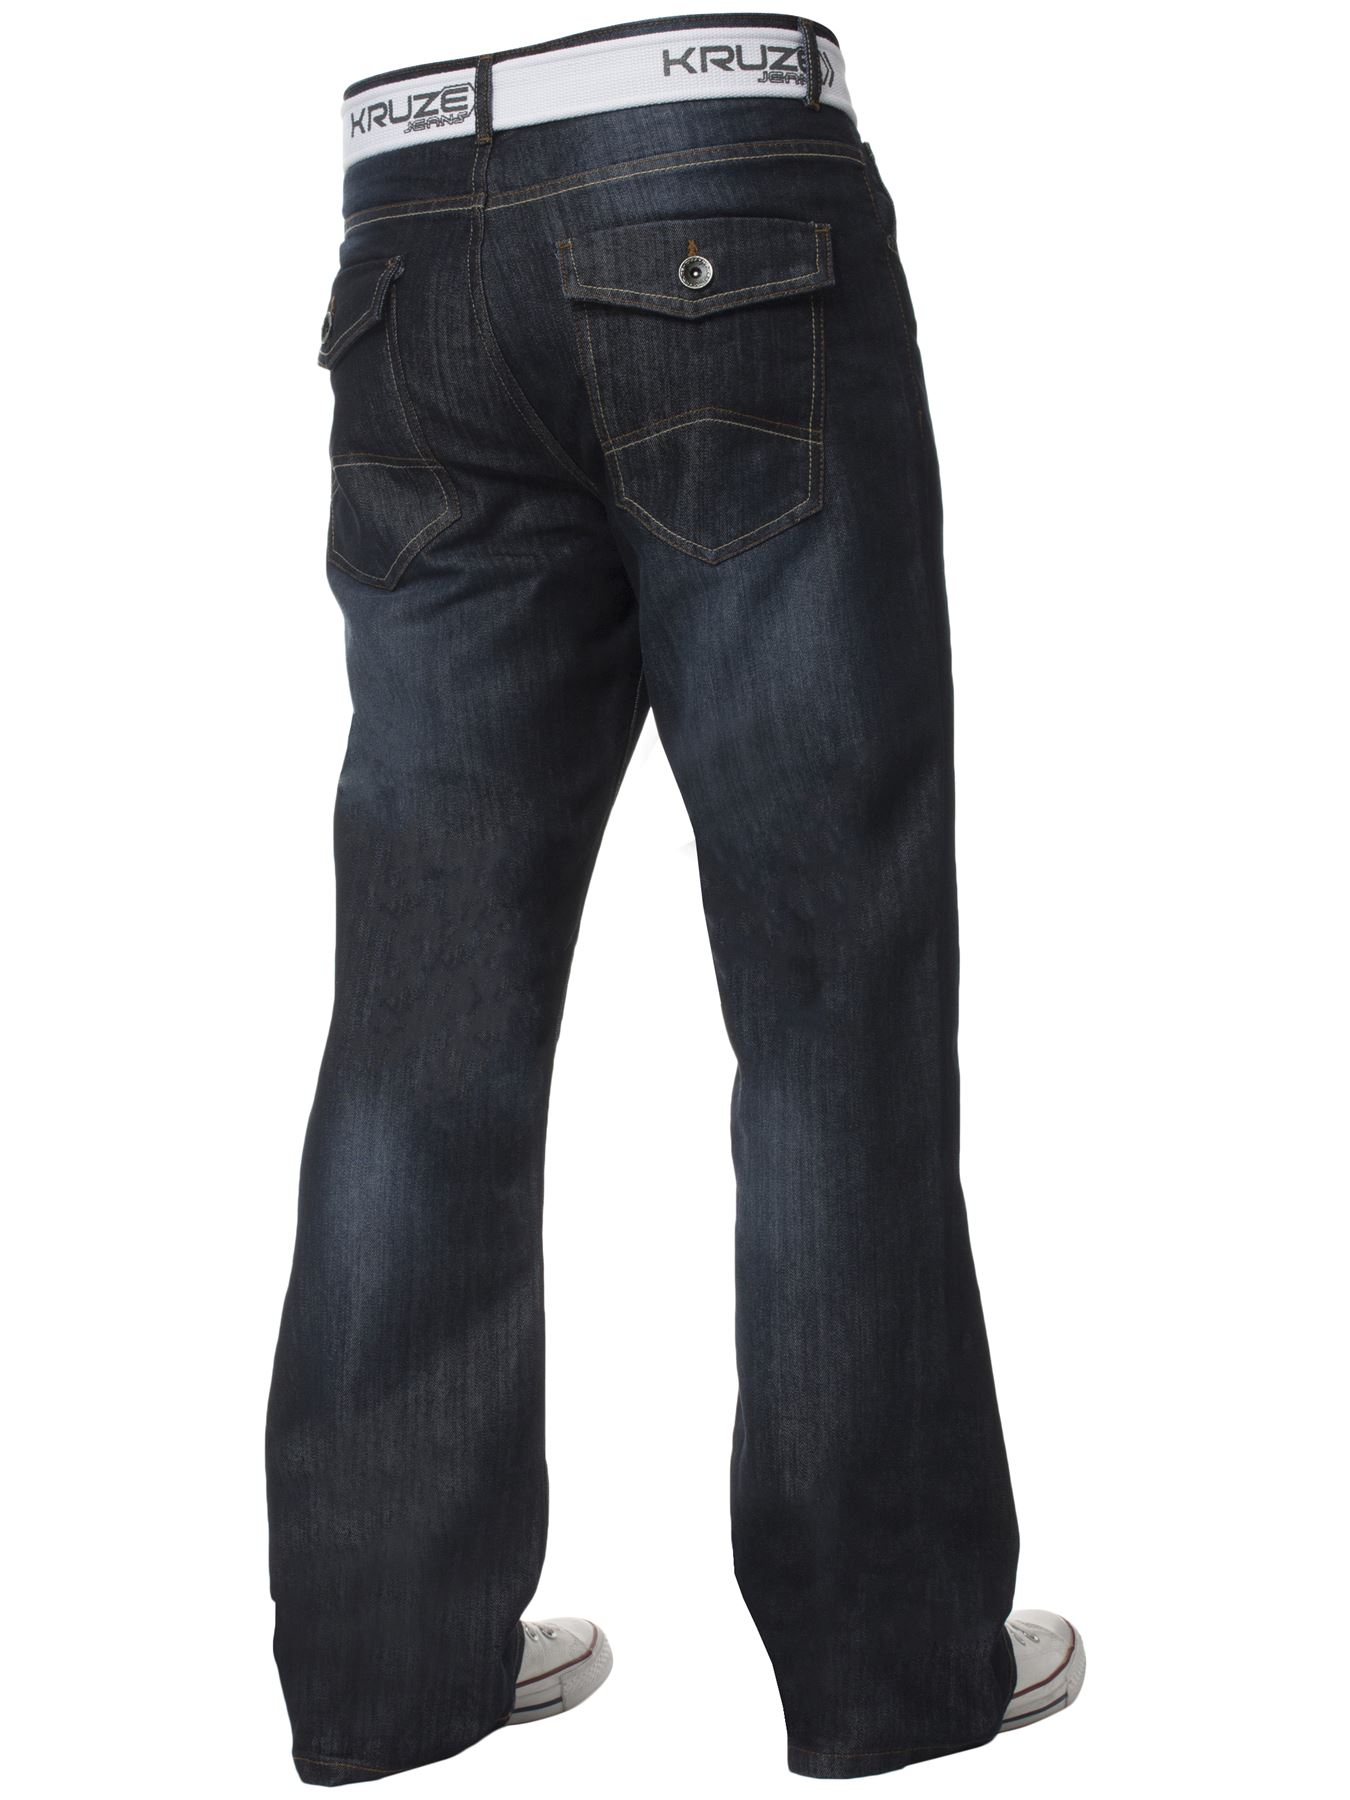 Kruze-Denim-New-Mens-Bootcut-Jeans-Wide-Leg-Flare-Pants-King-Big-All-Waist-Sizes thumbnail 11